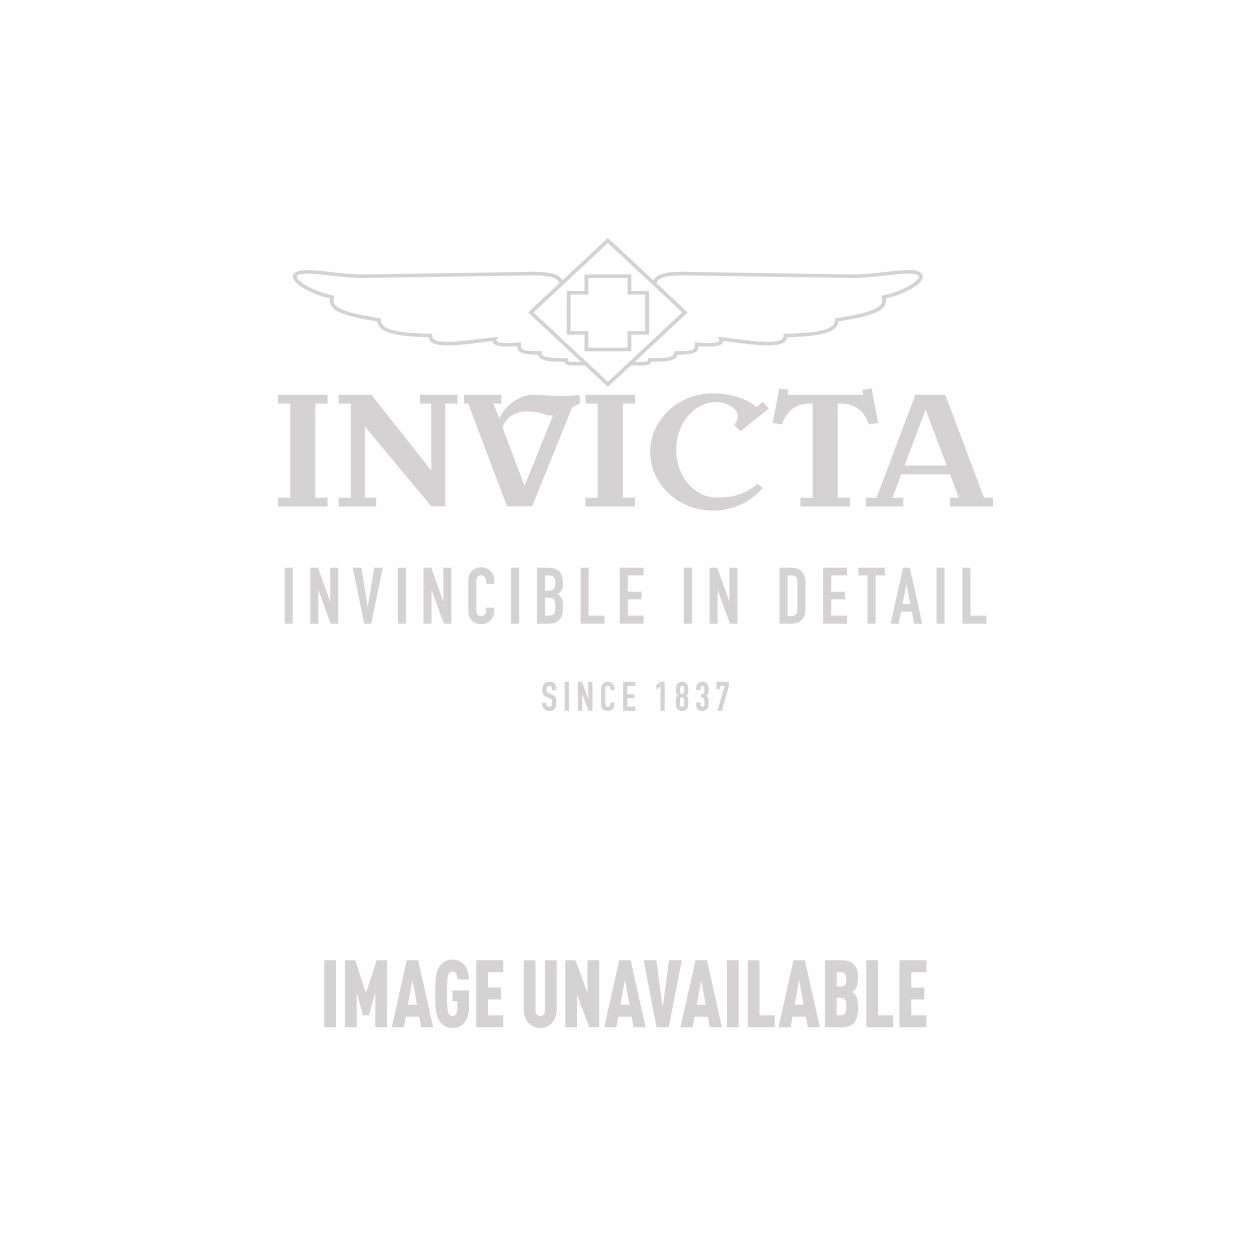 Invicta Speedway Quartz Watch - Black, Stainless Steel case Stainless Steel band - Model 17314